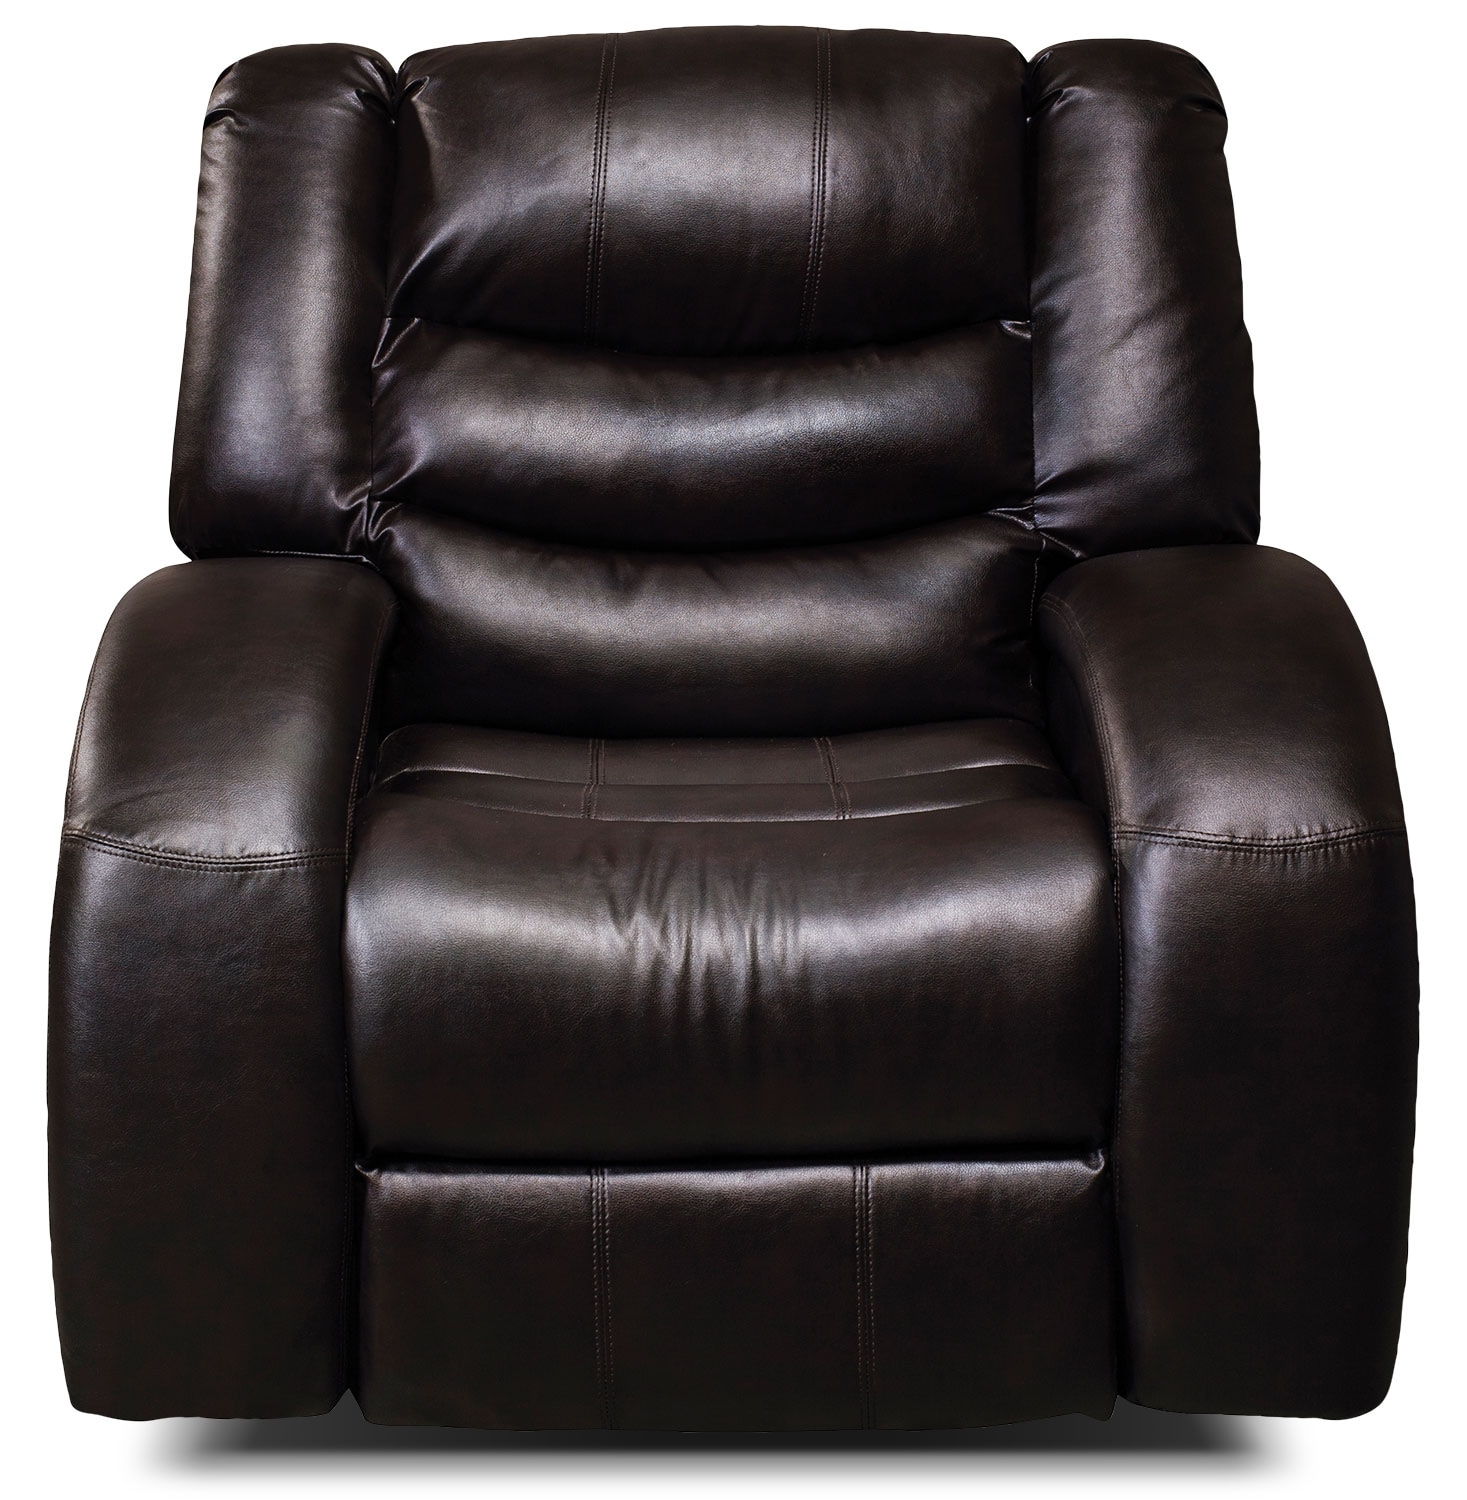 Angus Bonded Leather Reclining Chair – Dark Brown